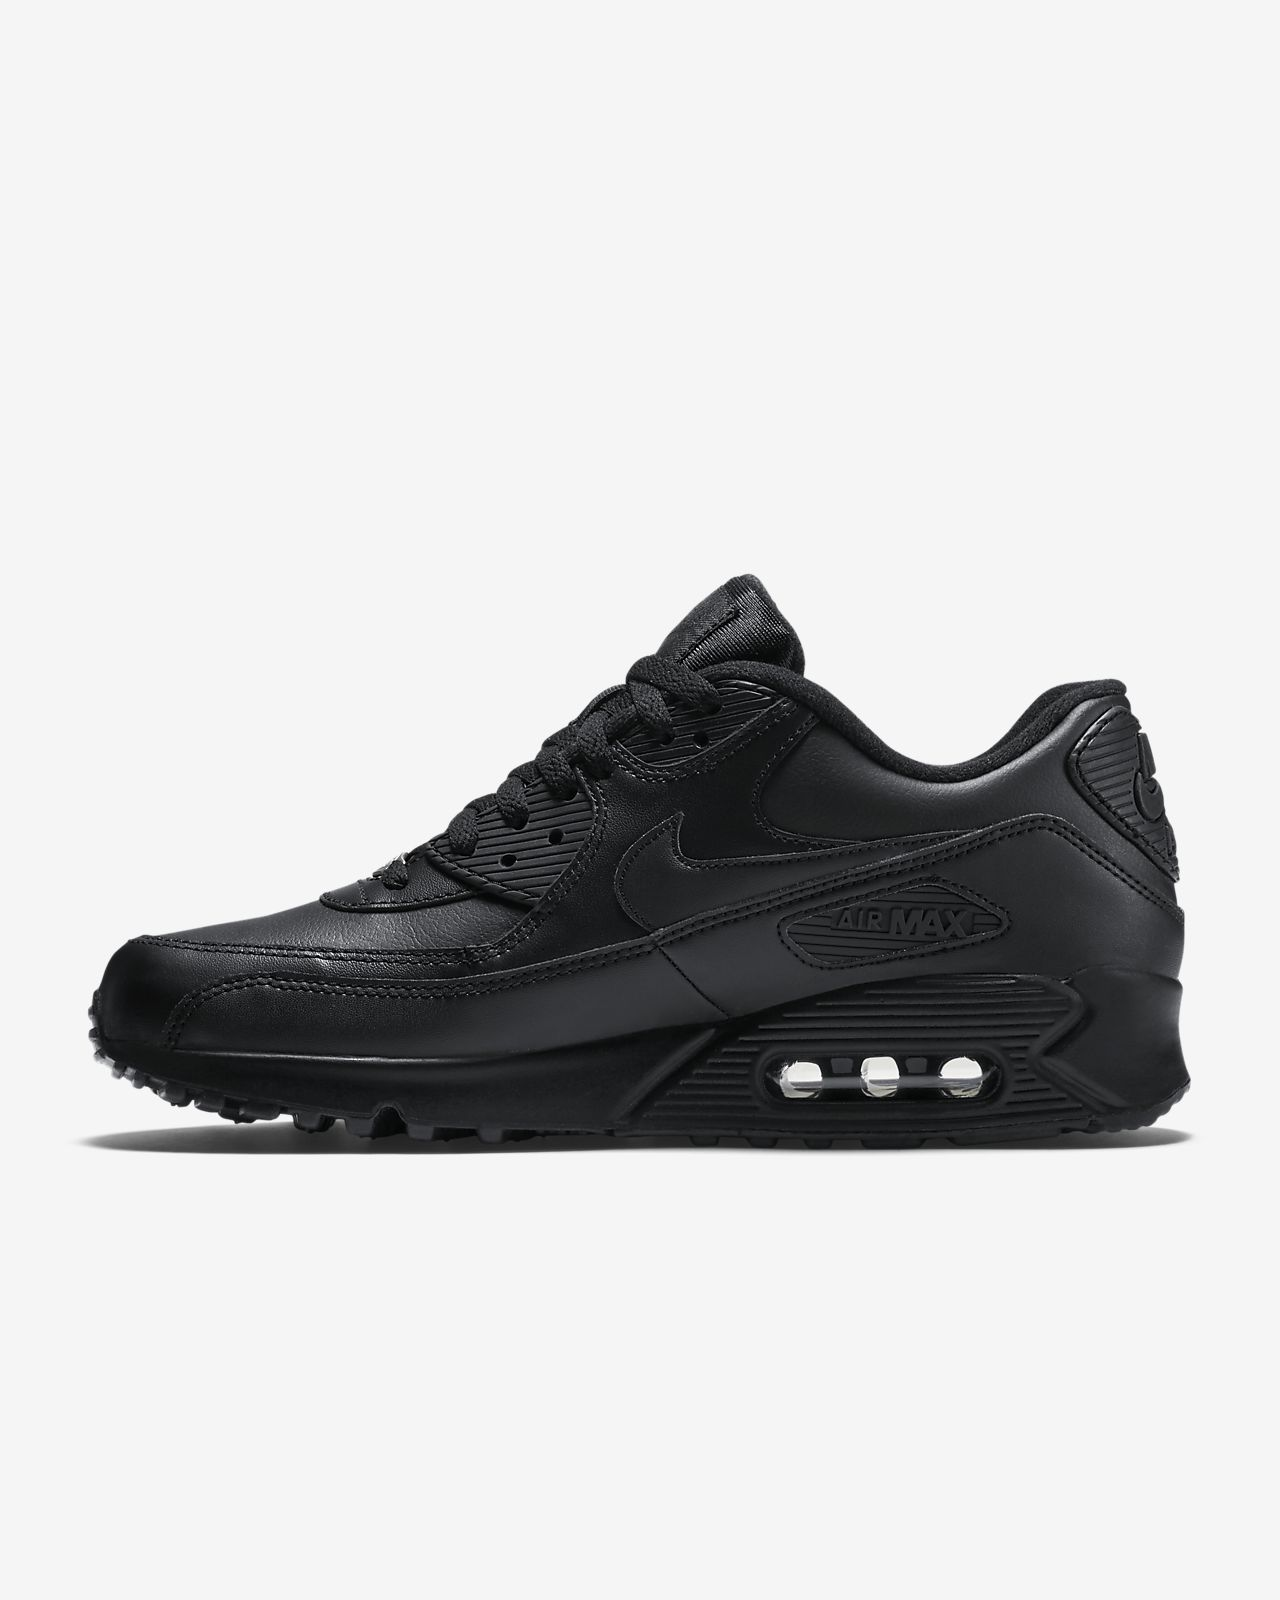 Nike Air Max 90 Leather Mænd Sort 302519 001